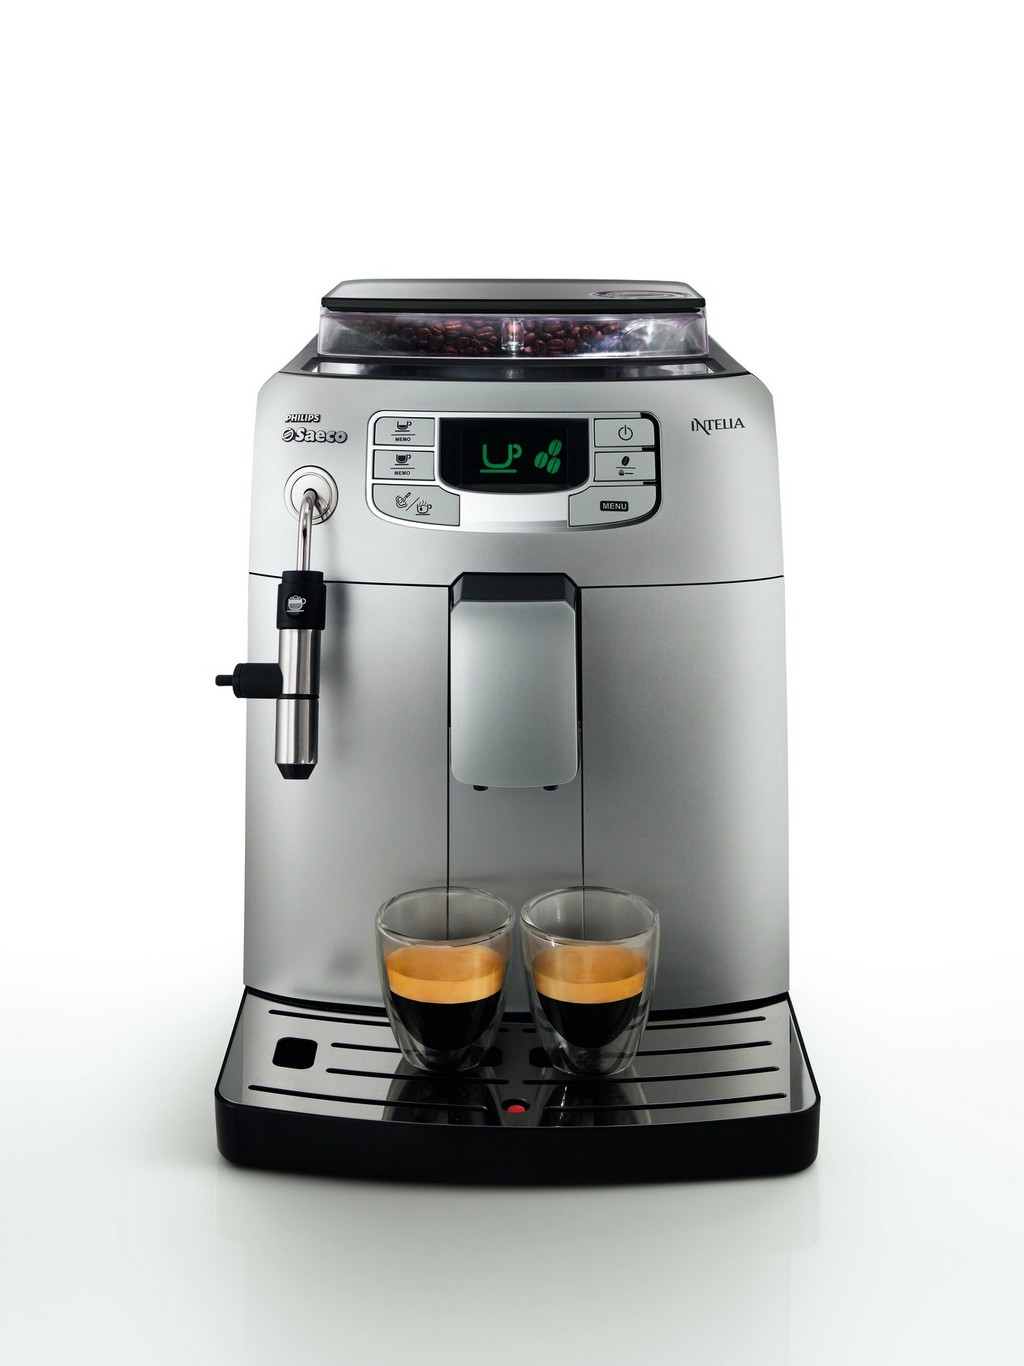 espresso and cappuccino maker, the best espresso machine for home, cuisinart espresso maker